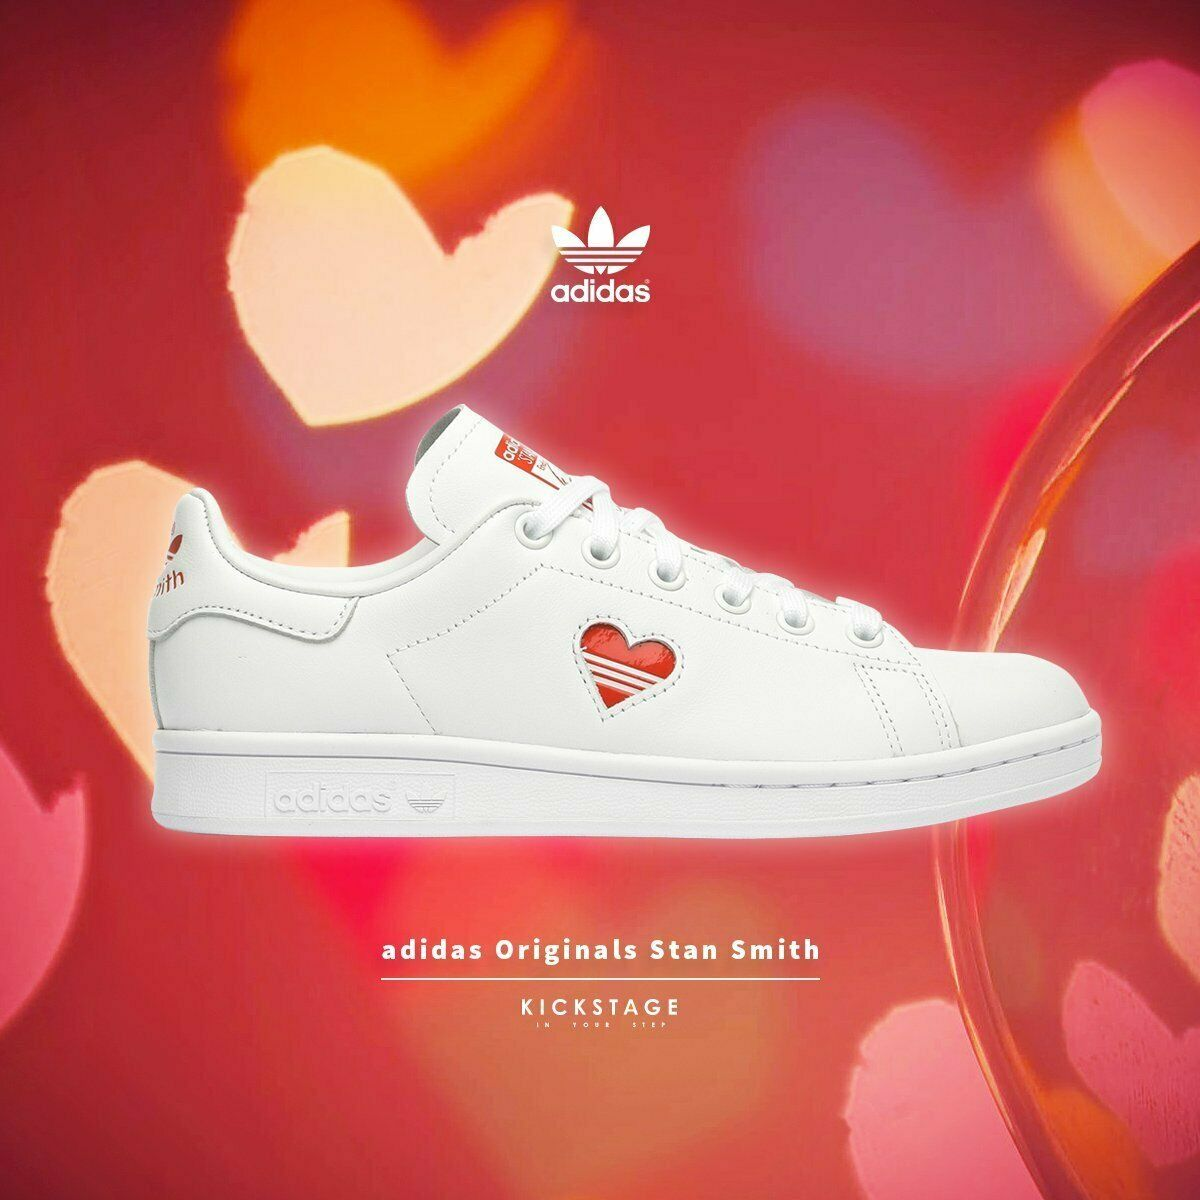 Adidas Originals Womens Stan Smith W VDAY Valentines Day